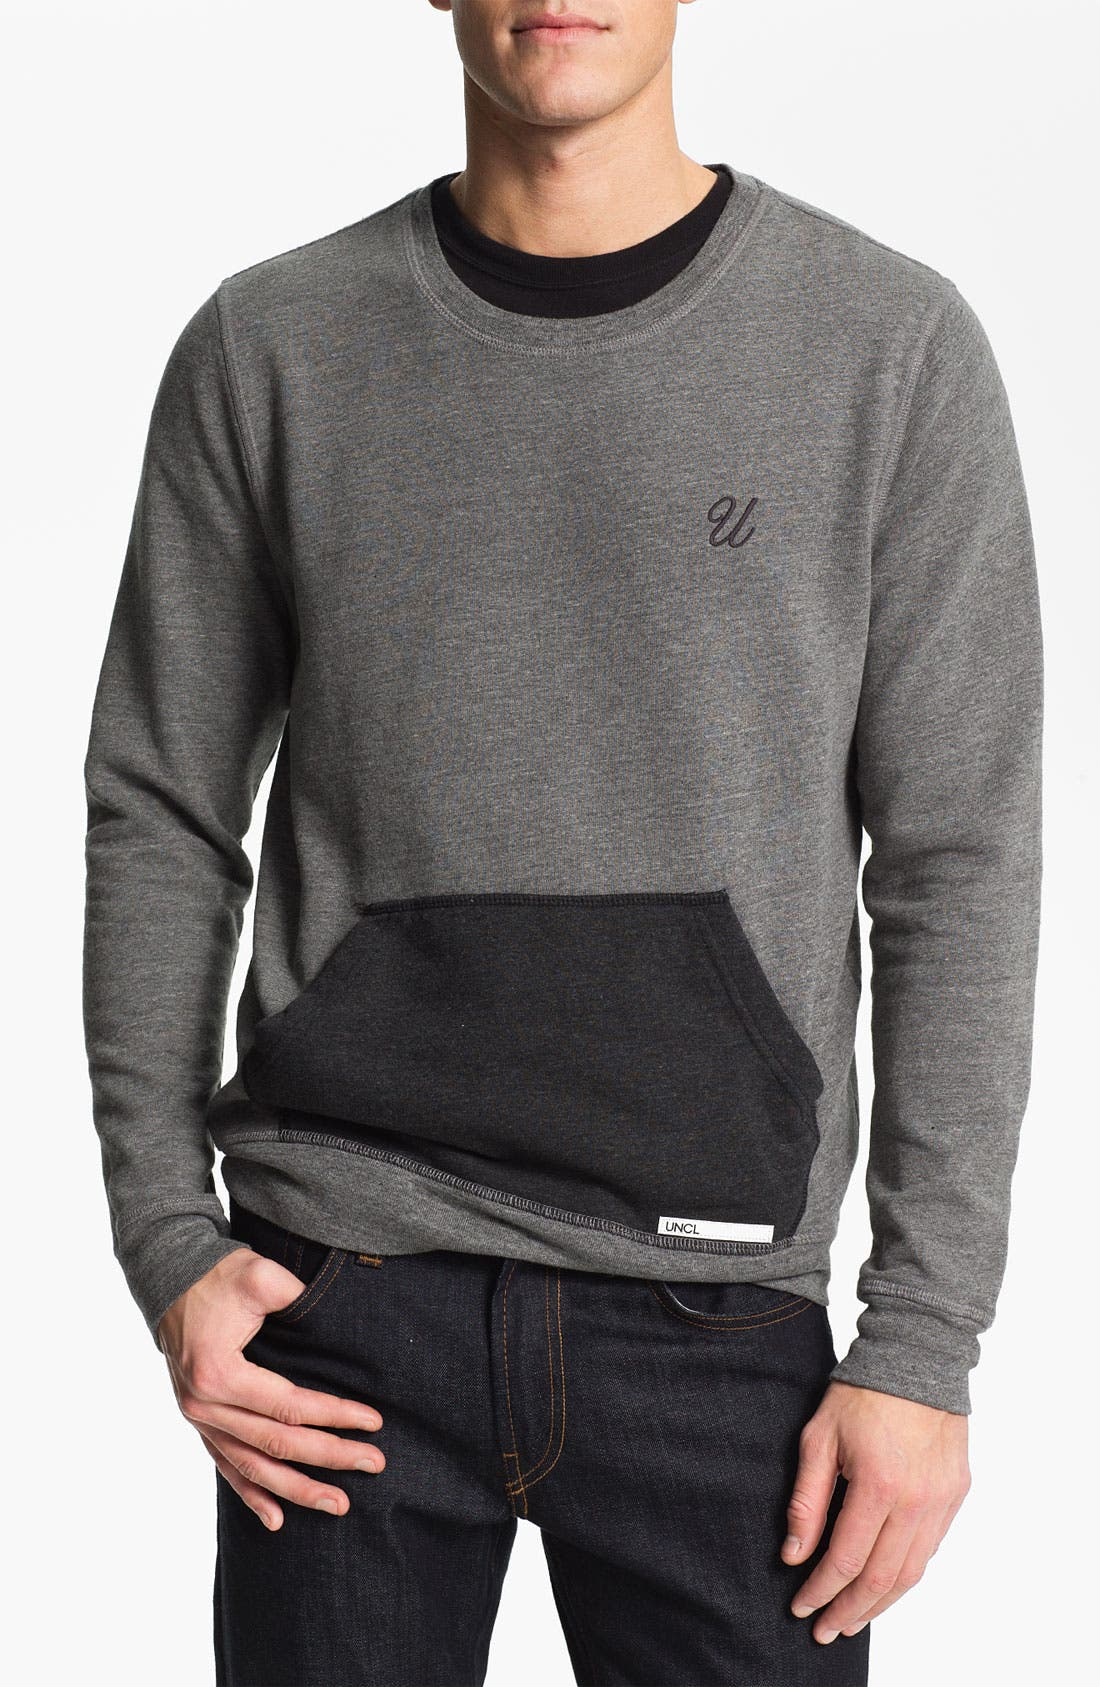 Alternate Image 1 Selected - UNCL Crewneck Fleece Sweatshirt